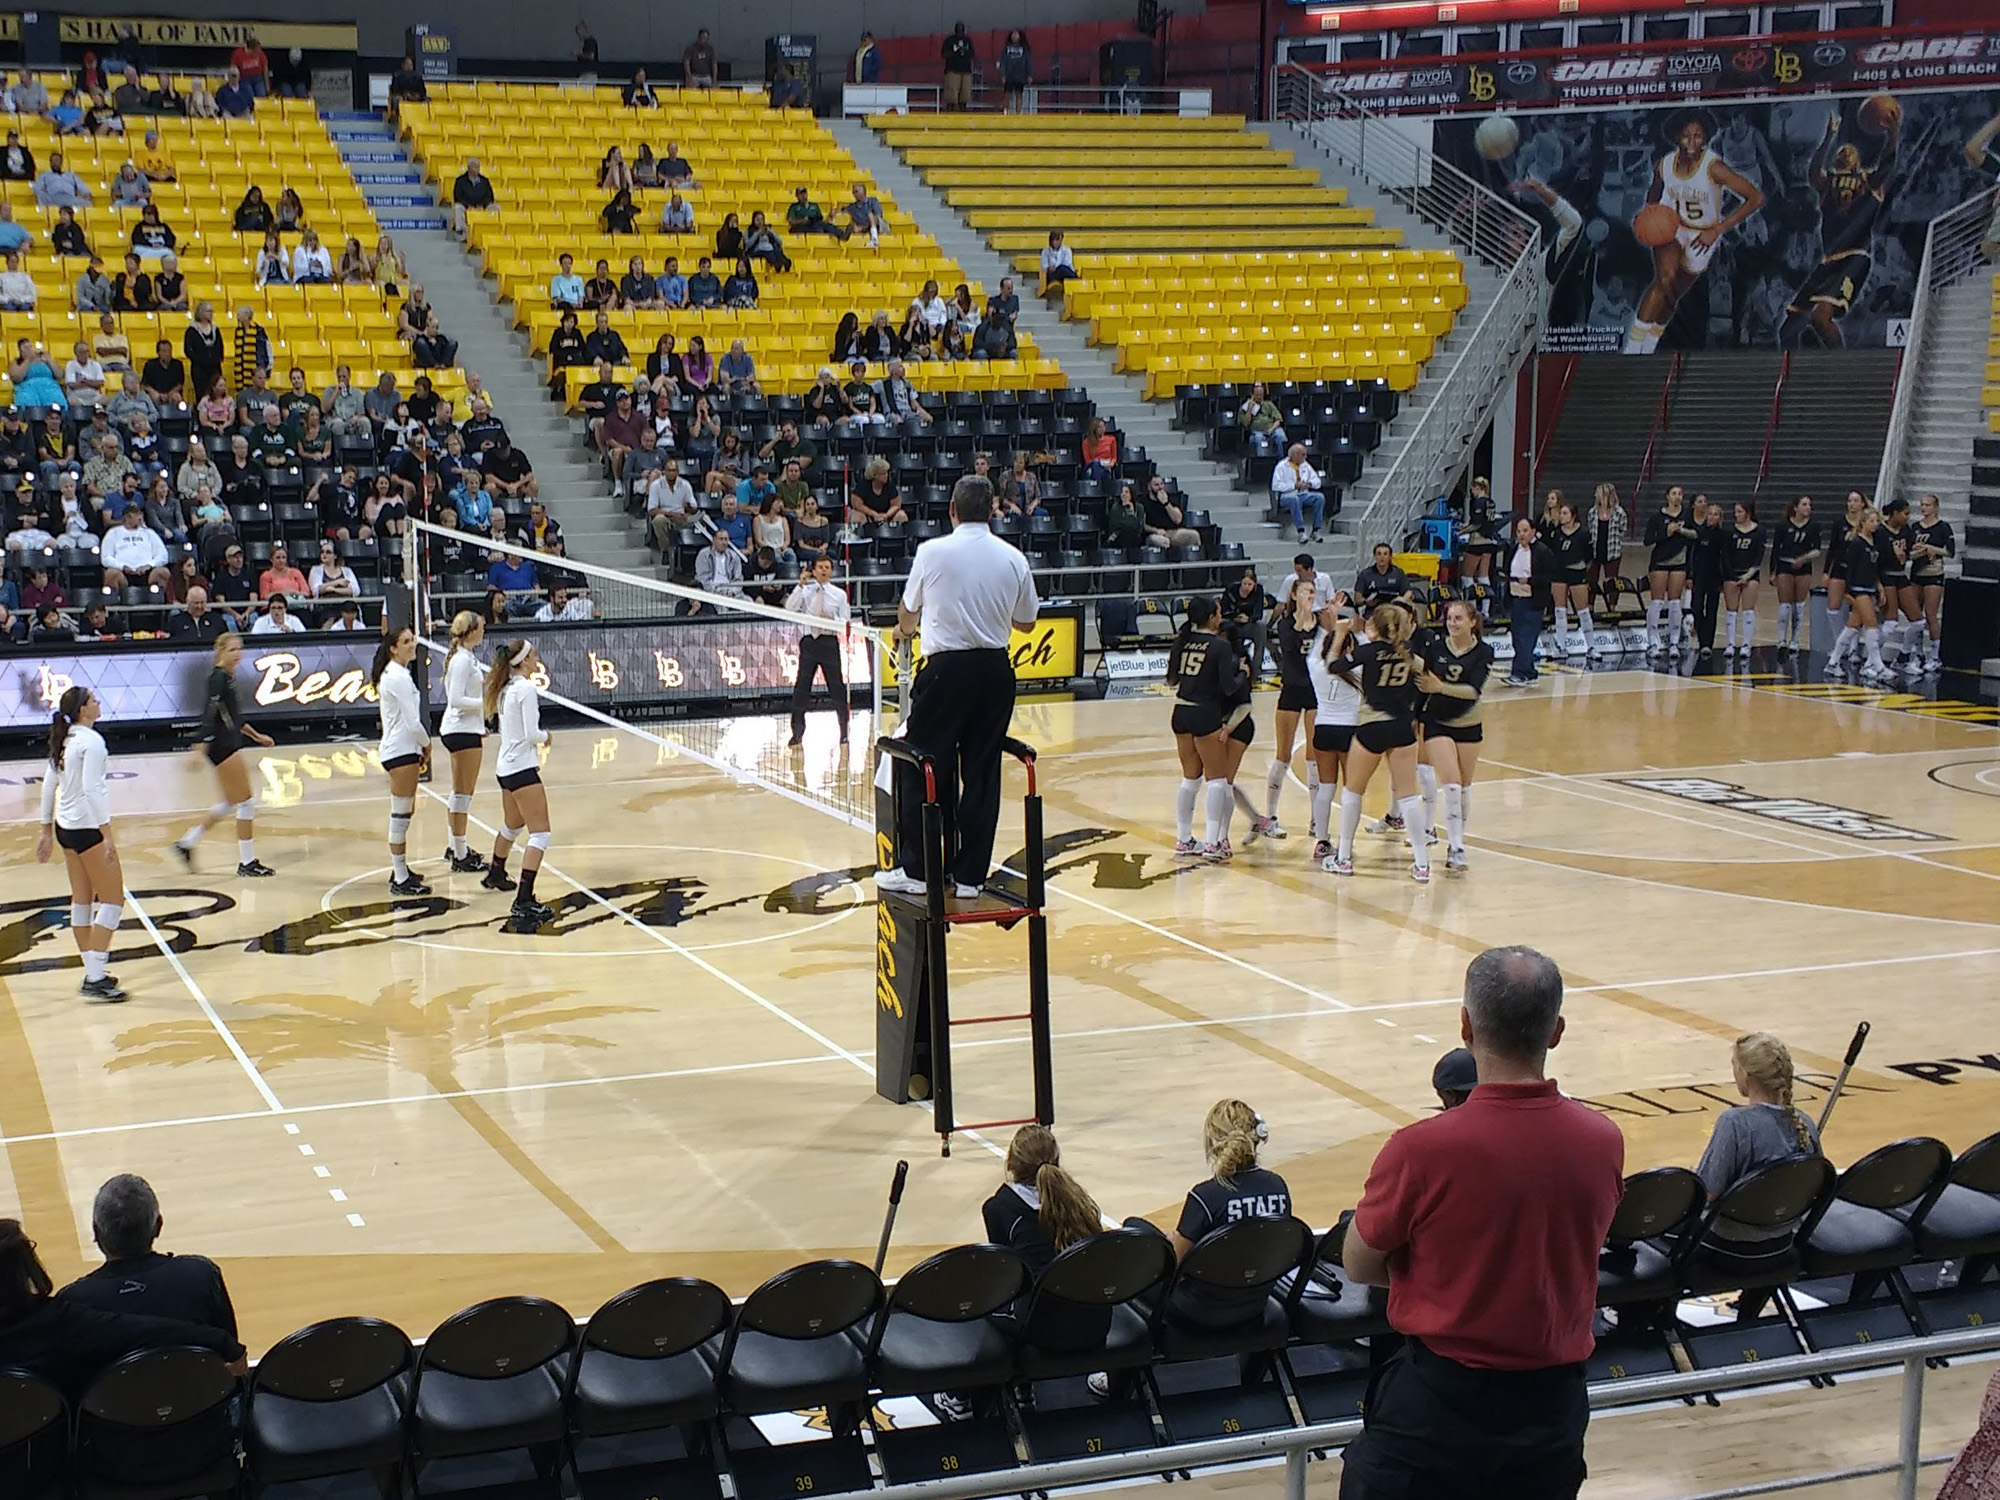 Women's volleyball players on the court at the Long Beach State Pyramid